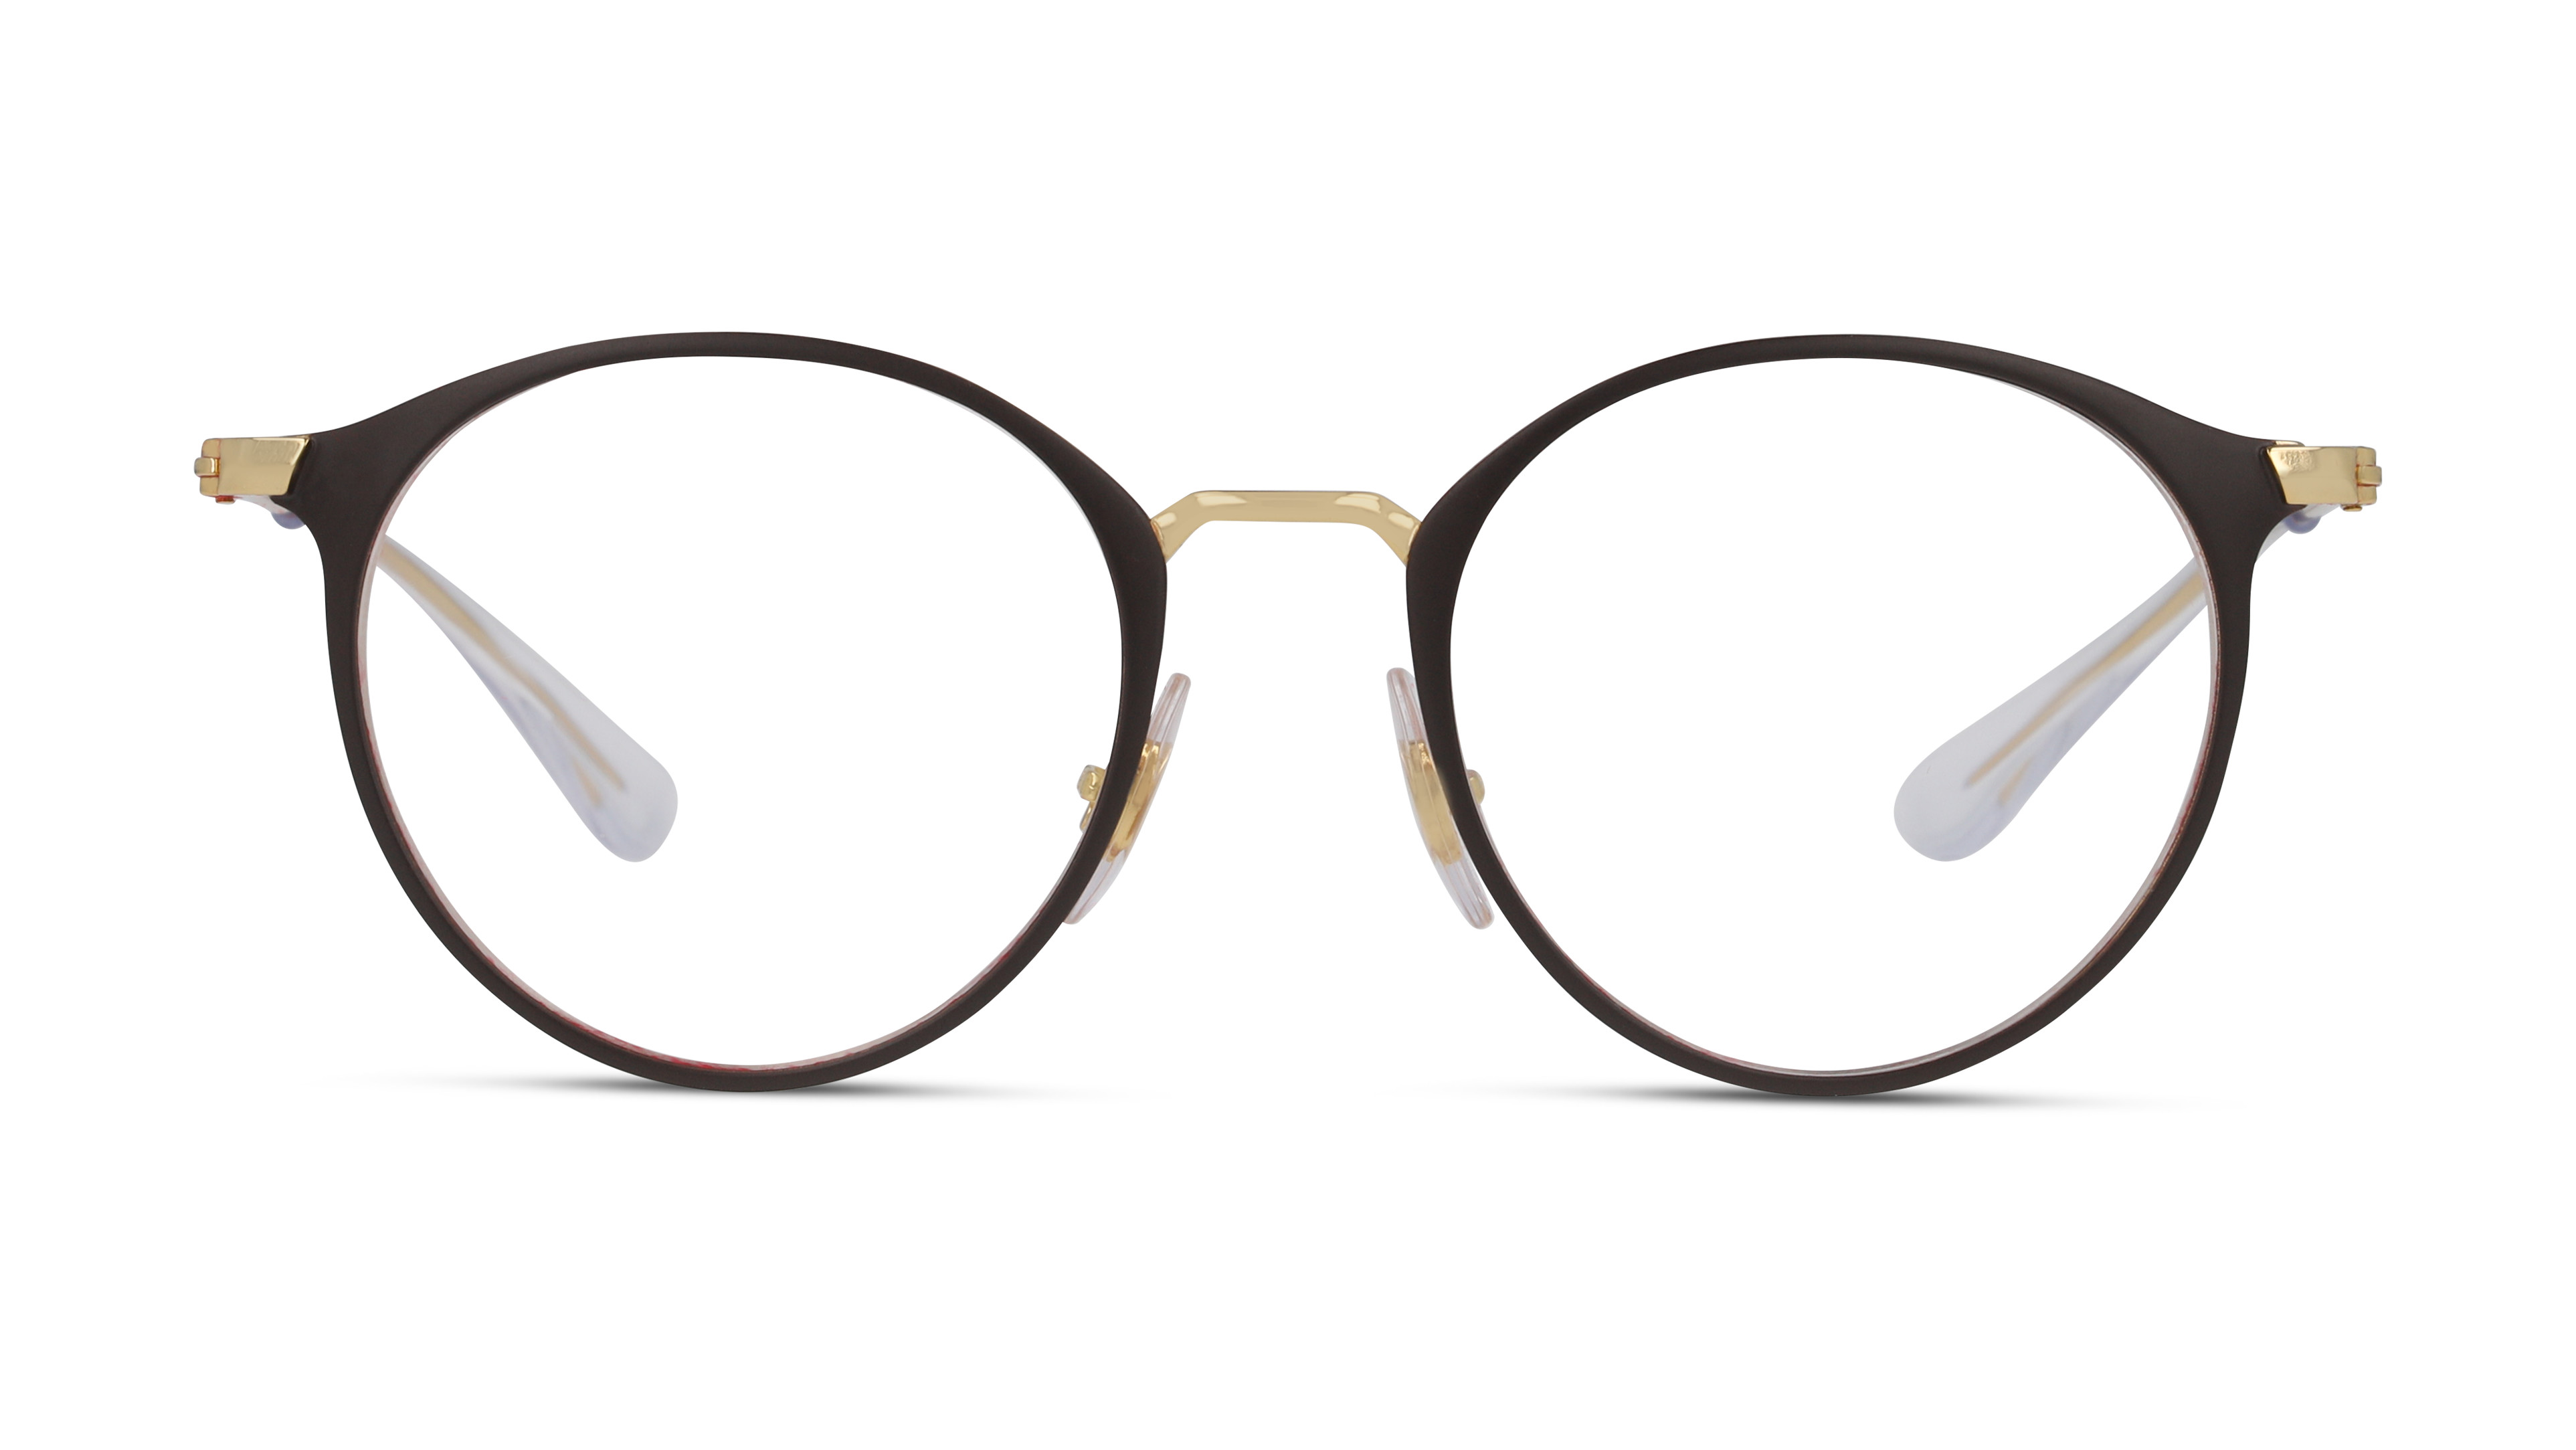 8056597266055-front-Ray-Ban-Brillenfassung-0ry1053-gold-on-top-matte-brown